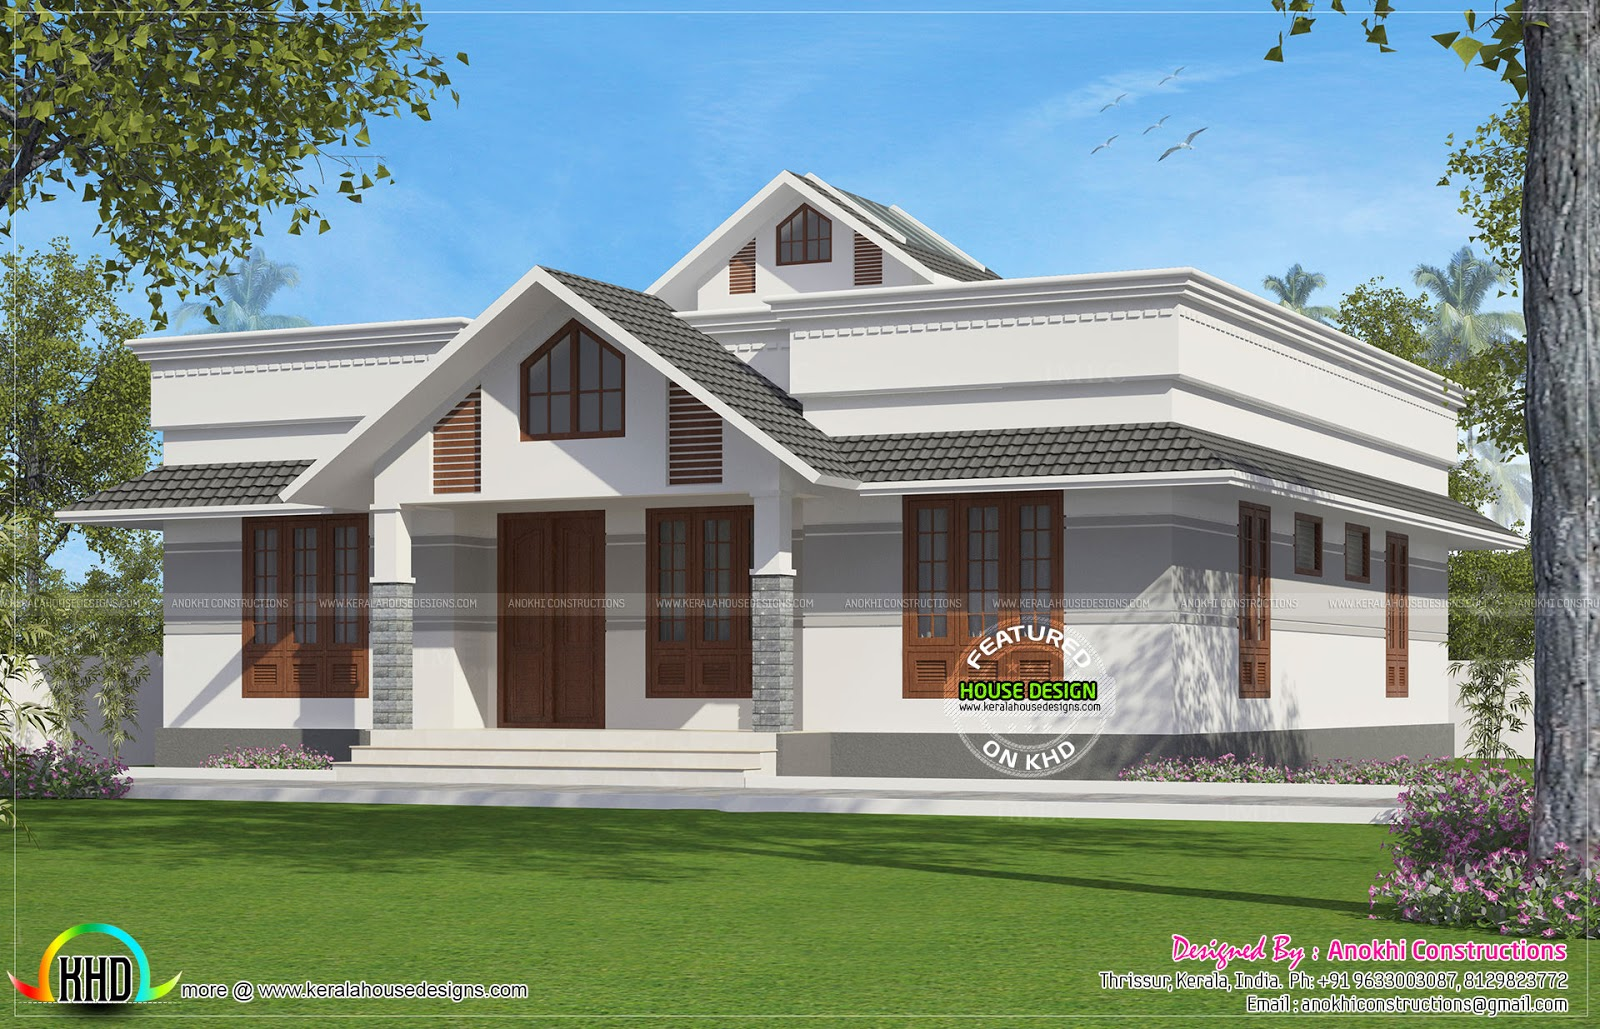 1330 square feet small house plan kerala home design and for Small home design plans